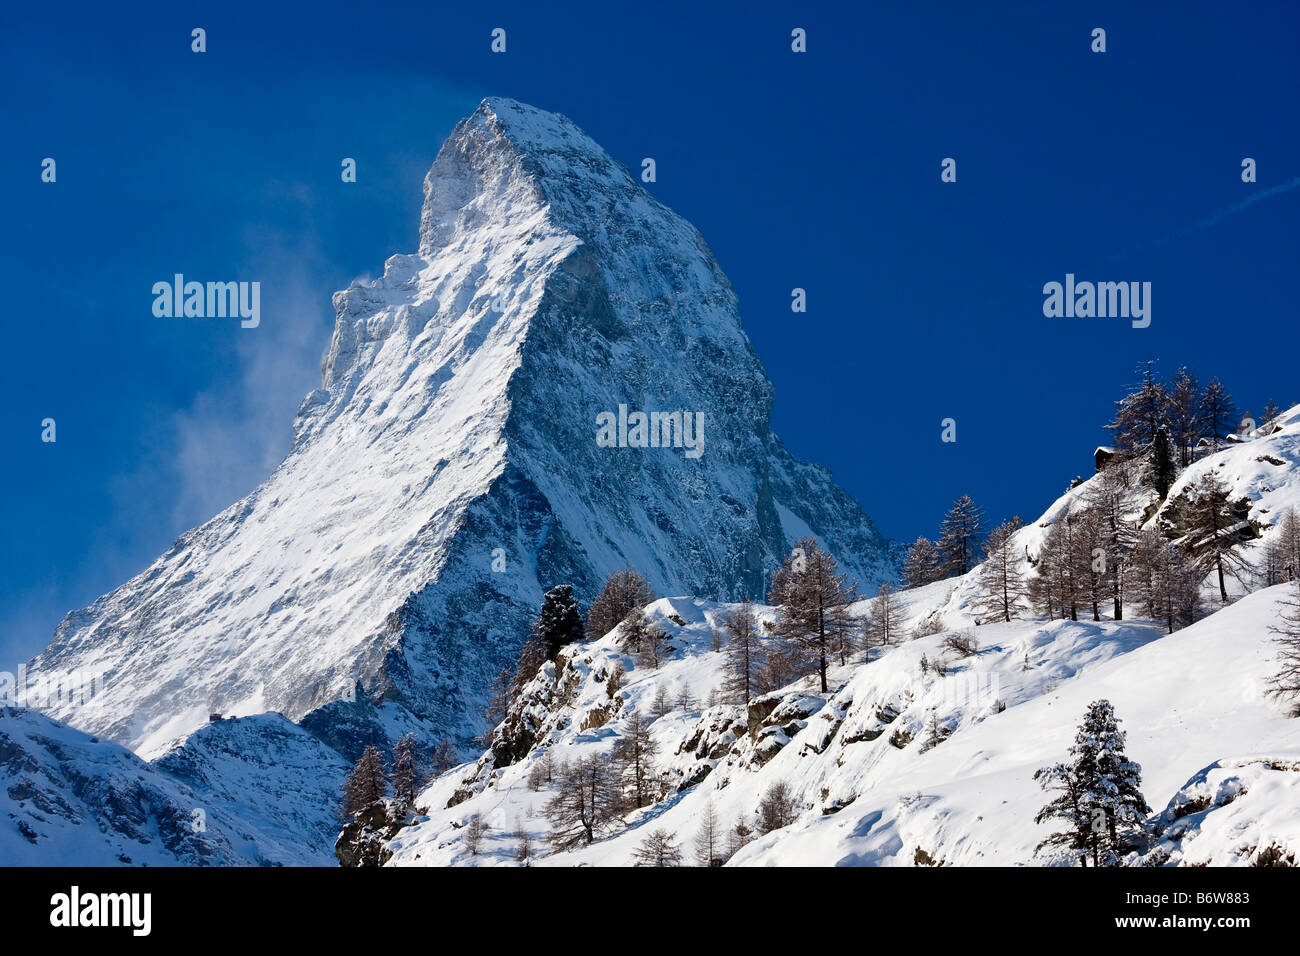 The Matterhorn from Zermatt Switzerland - Stock Image